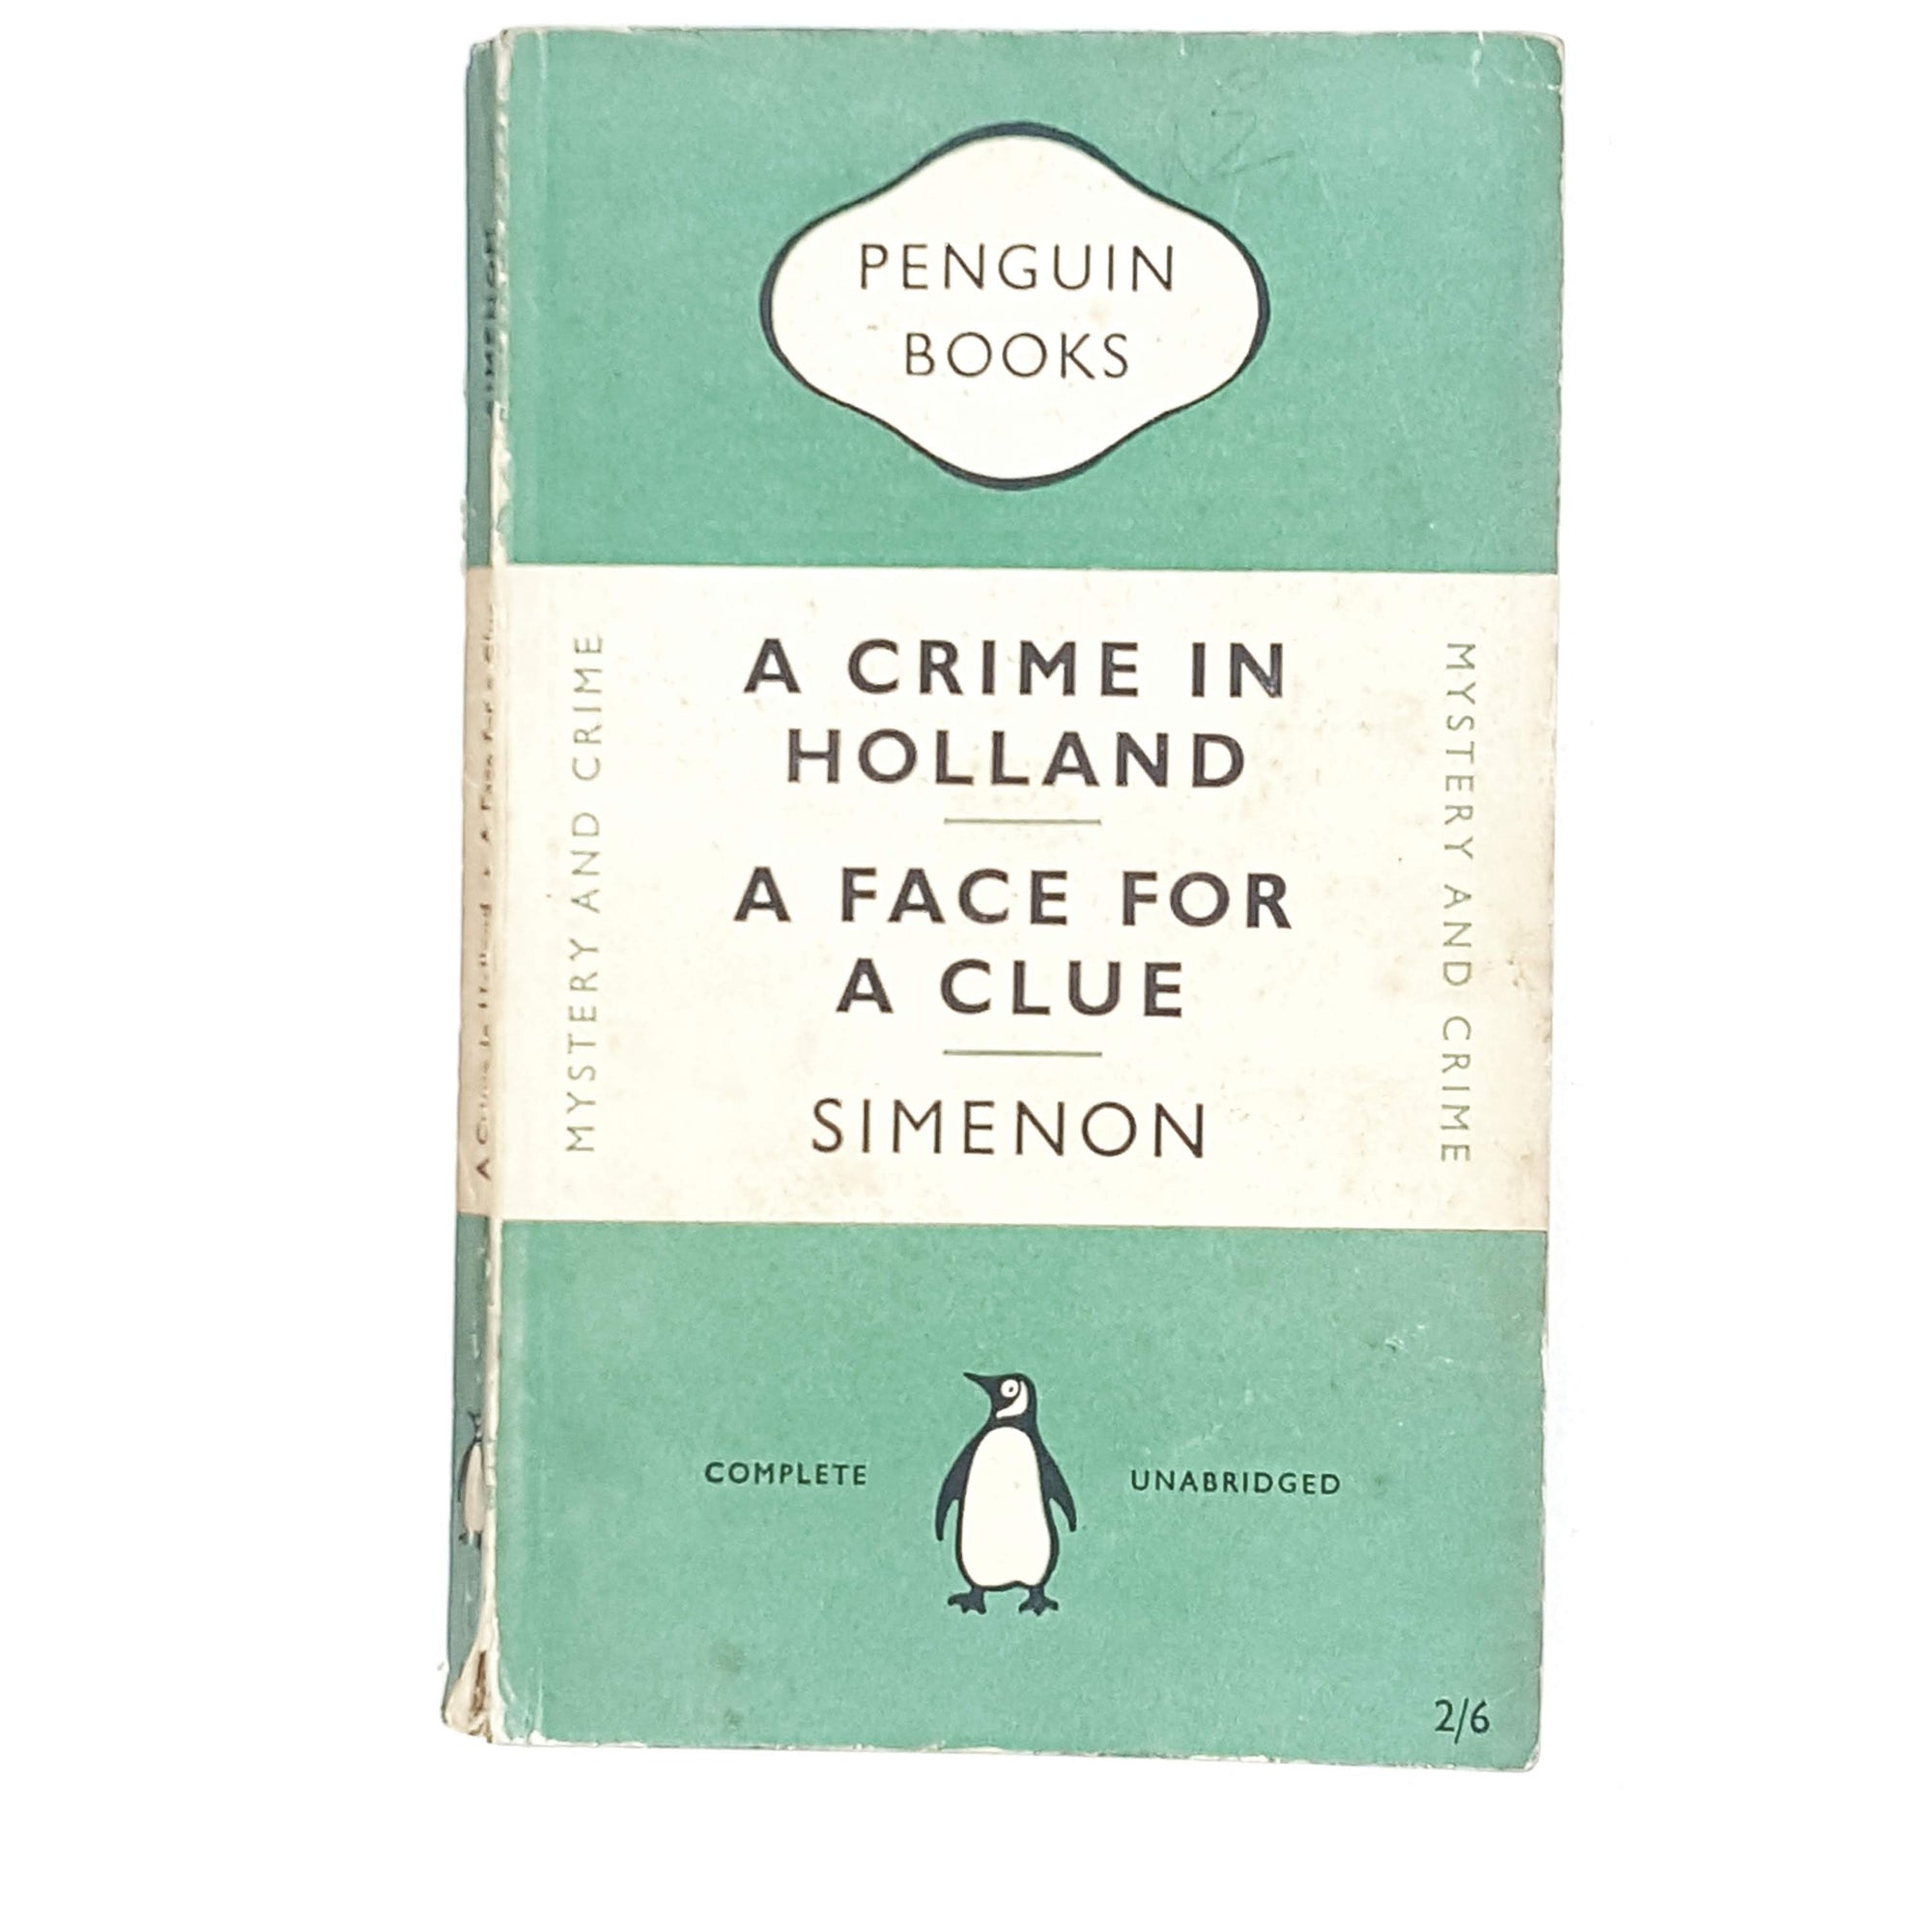 A Crime in Holland | A Face for a Clue by Simenon 1952